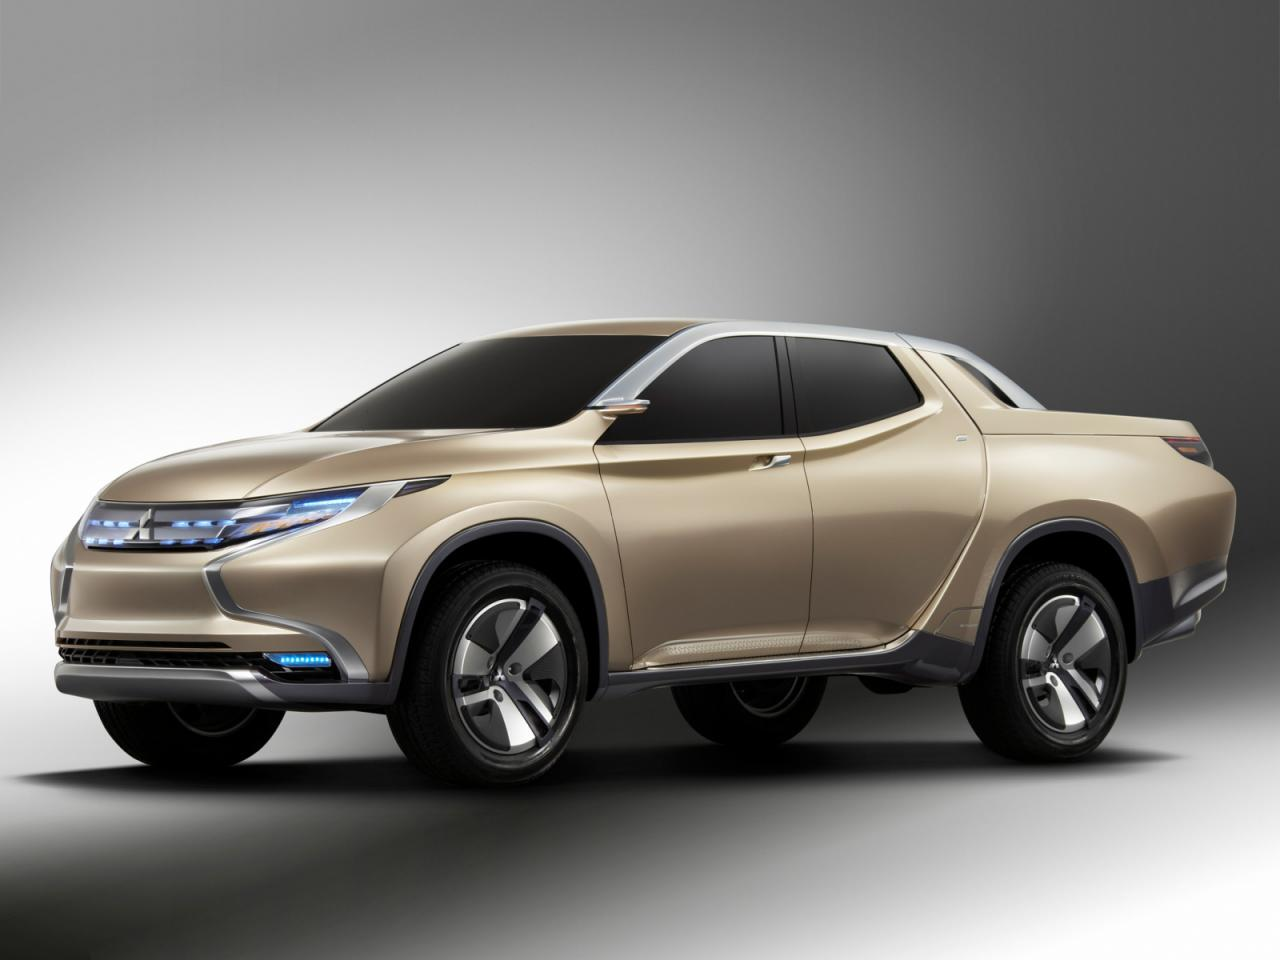 Mitsubishi Concept GR-HEV Sport Utility Hybrid Truck Edition Free Download Image Of